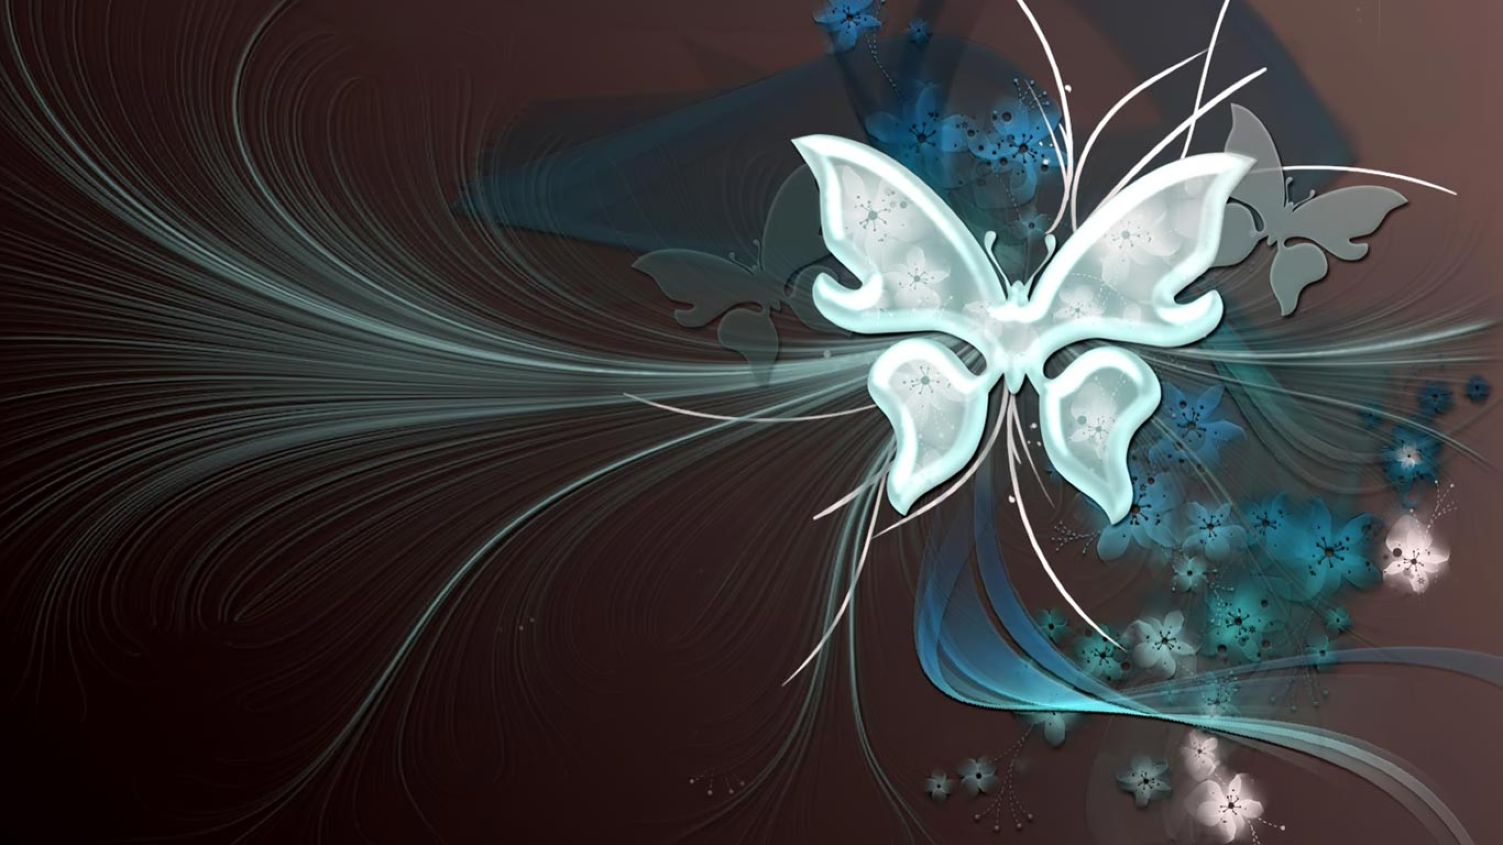 Download free HD 3D Butterfly HD for Laptop 1366×768 Wallpaper, image